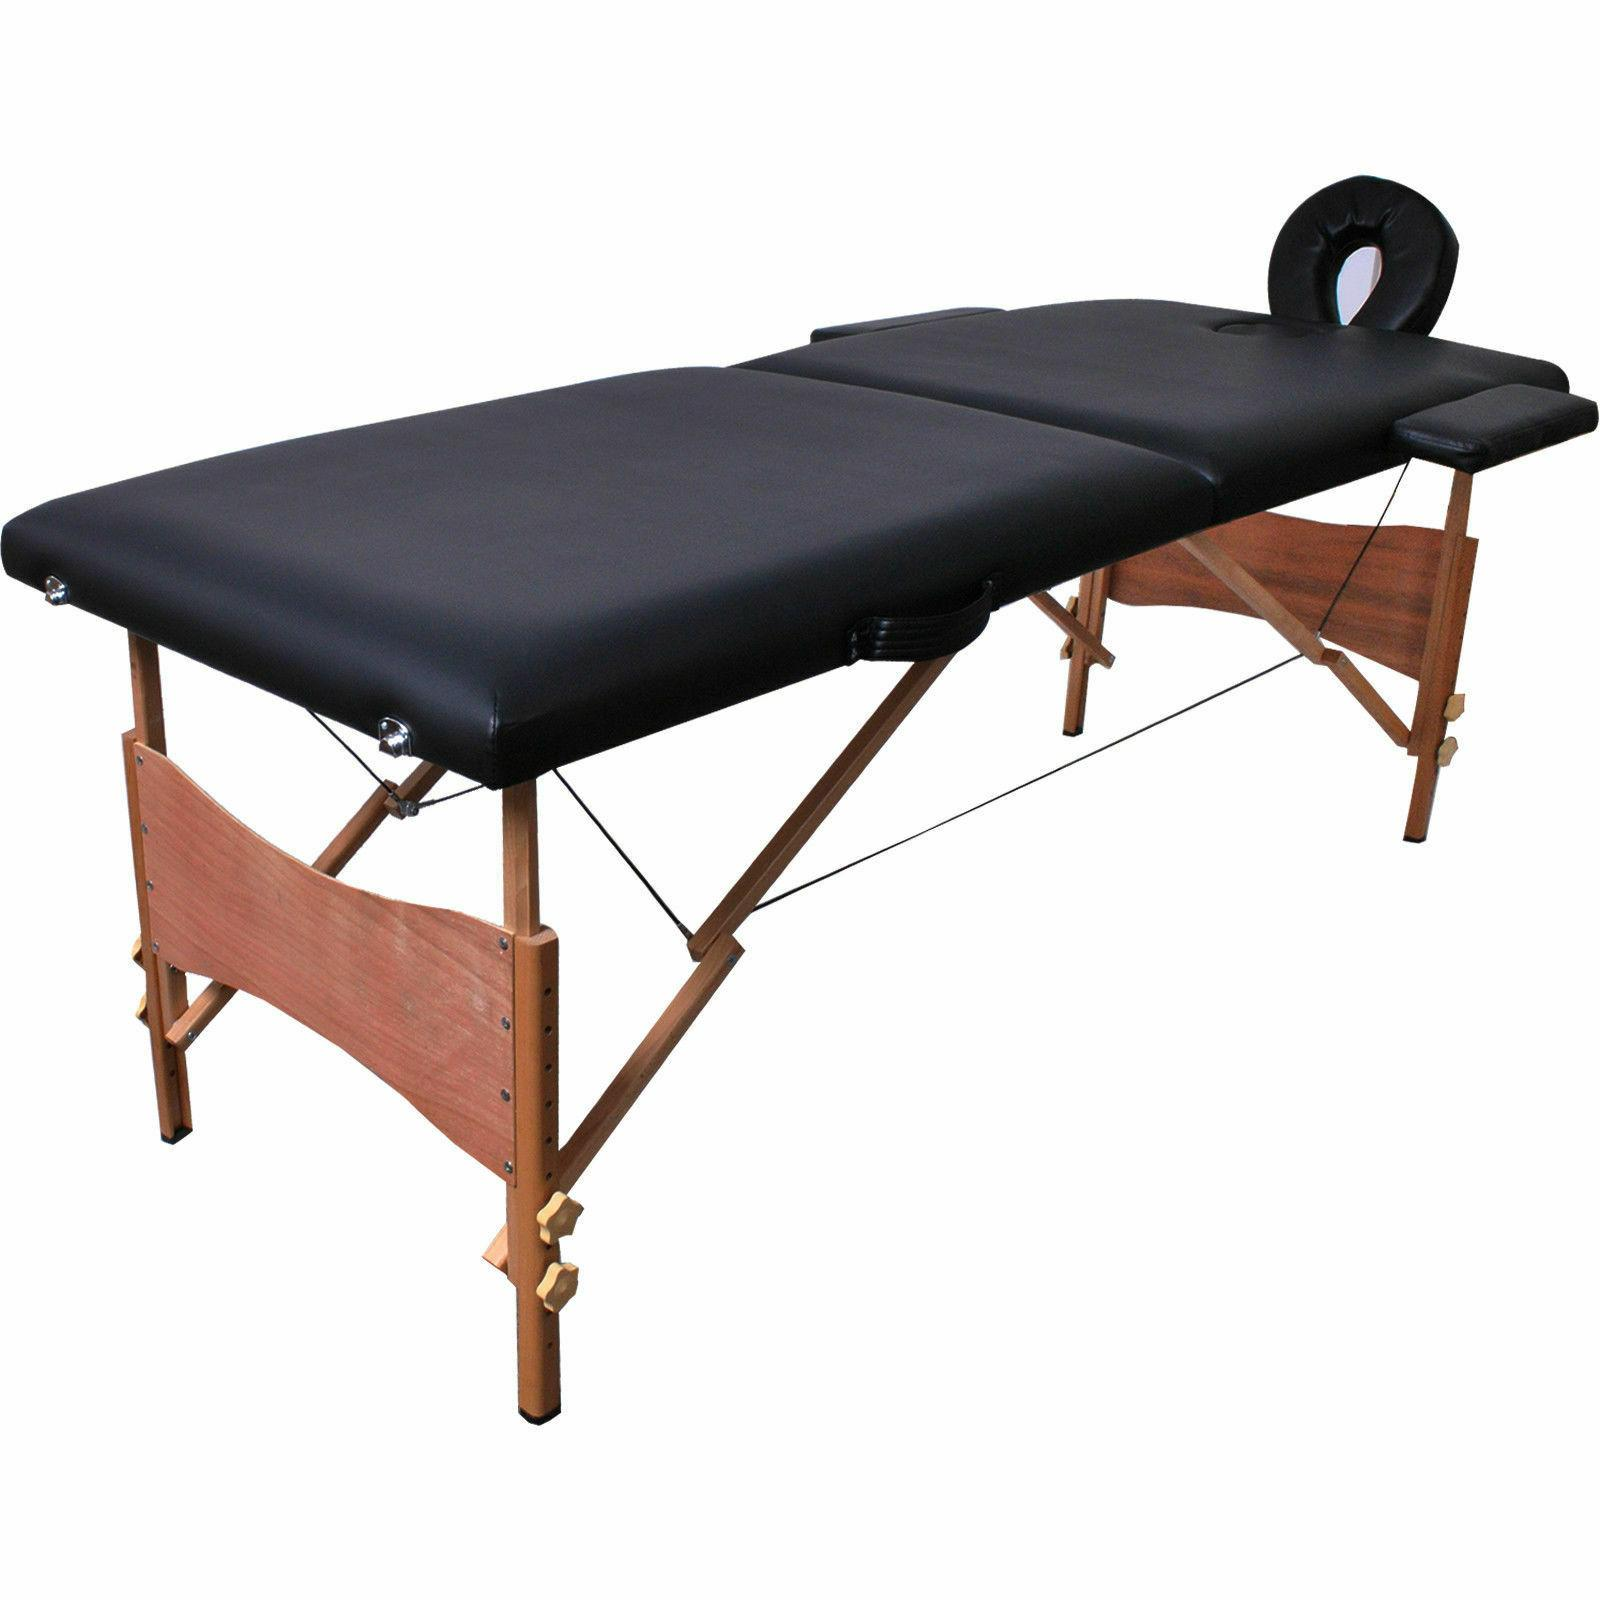 Table Bed Tattoo w/Free Carry Case Black Goplus Massage